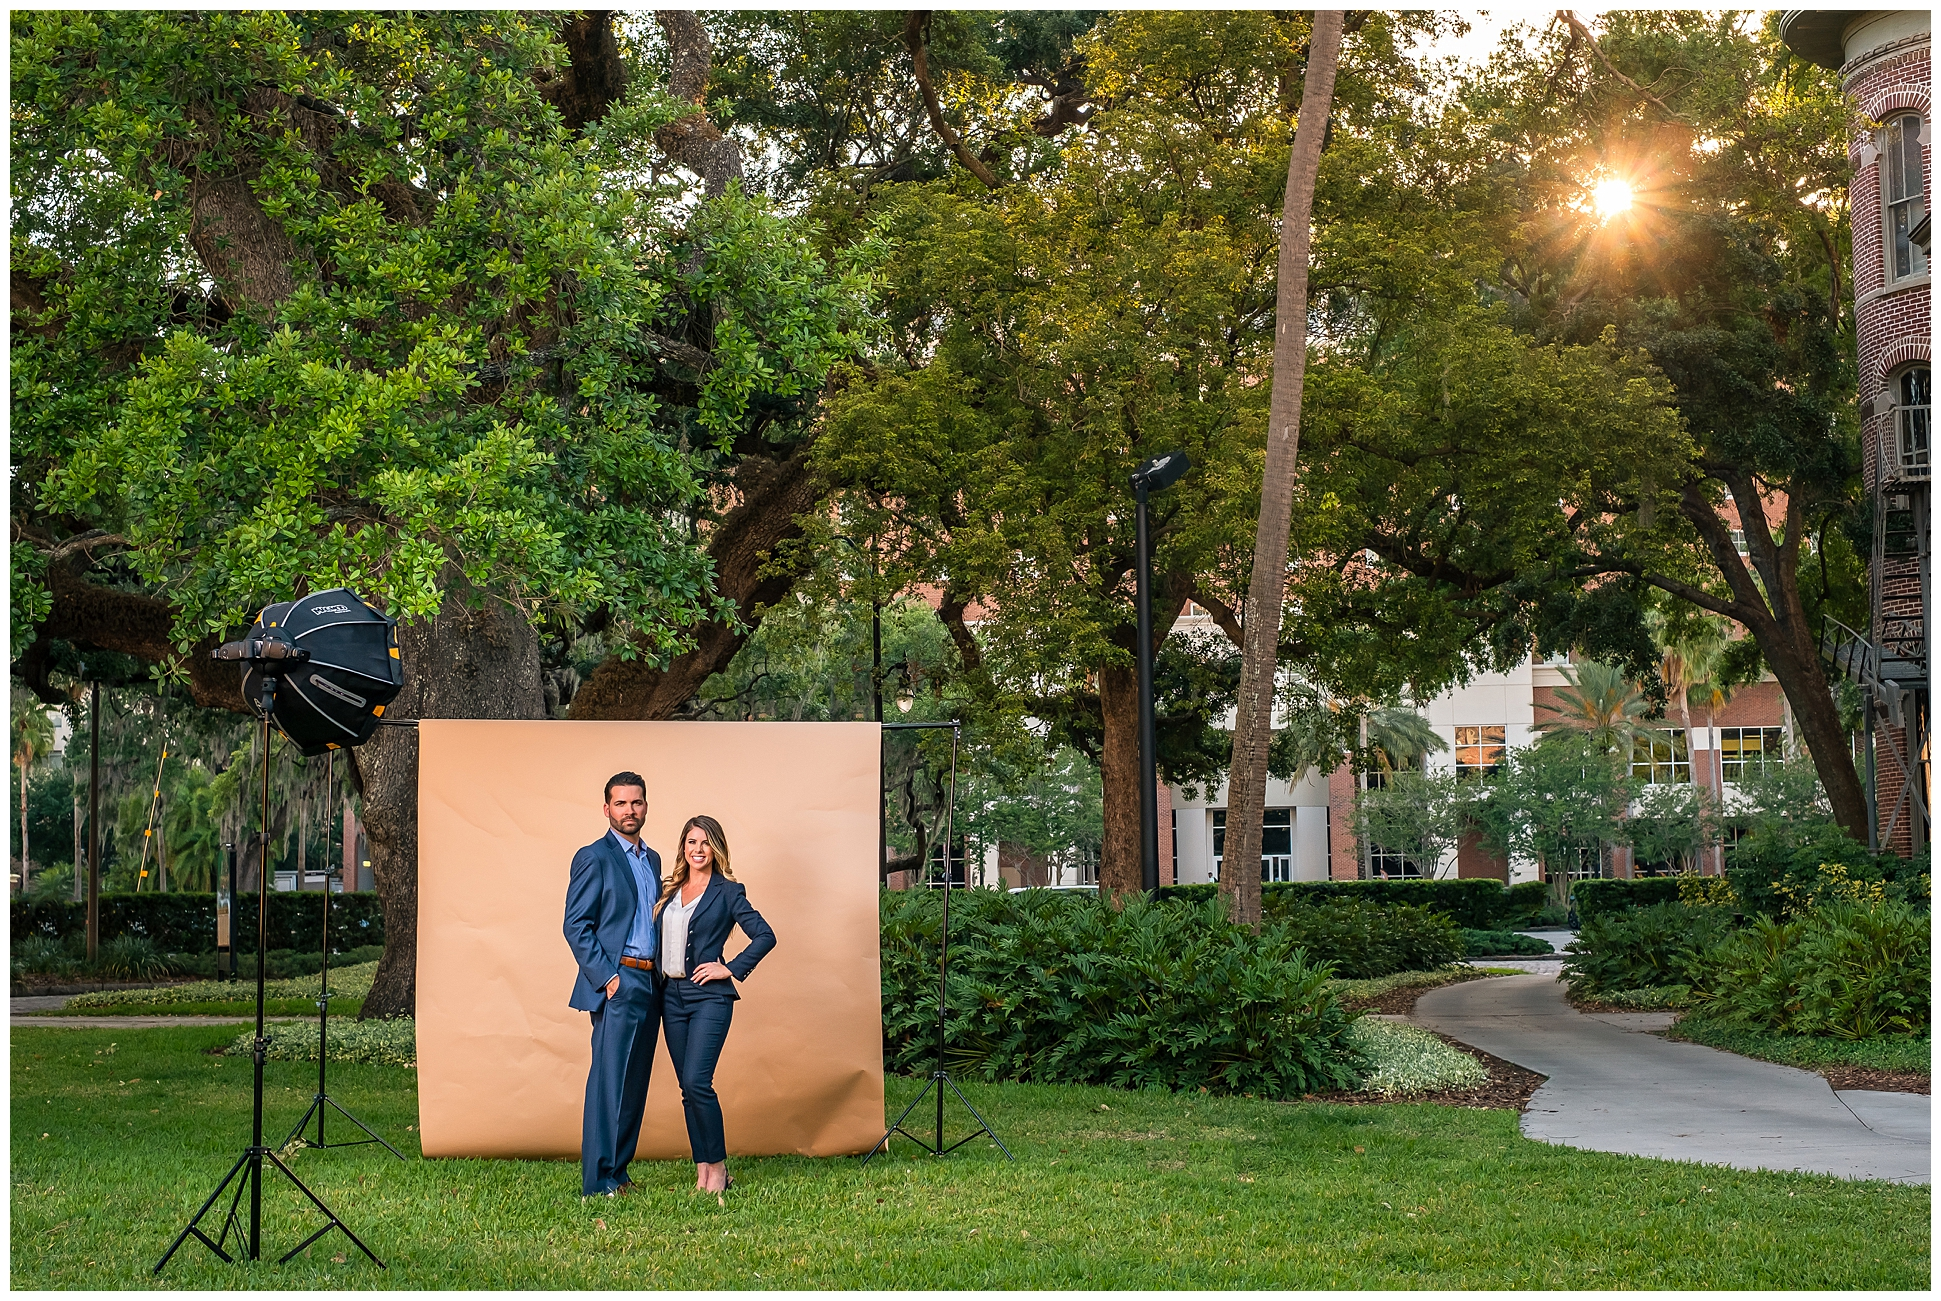 jackie-dave-jenkins-tampa-financial-advisor-branding-head-shot-portrait-client-interactions-university-ut_0012.jpg